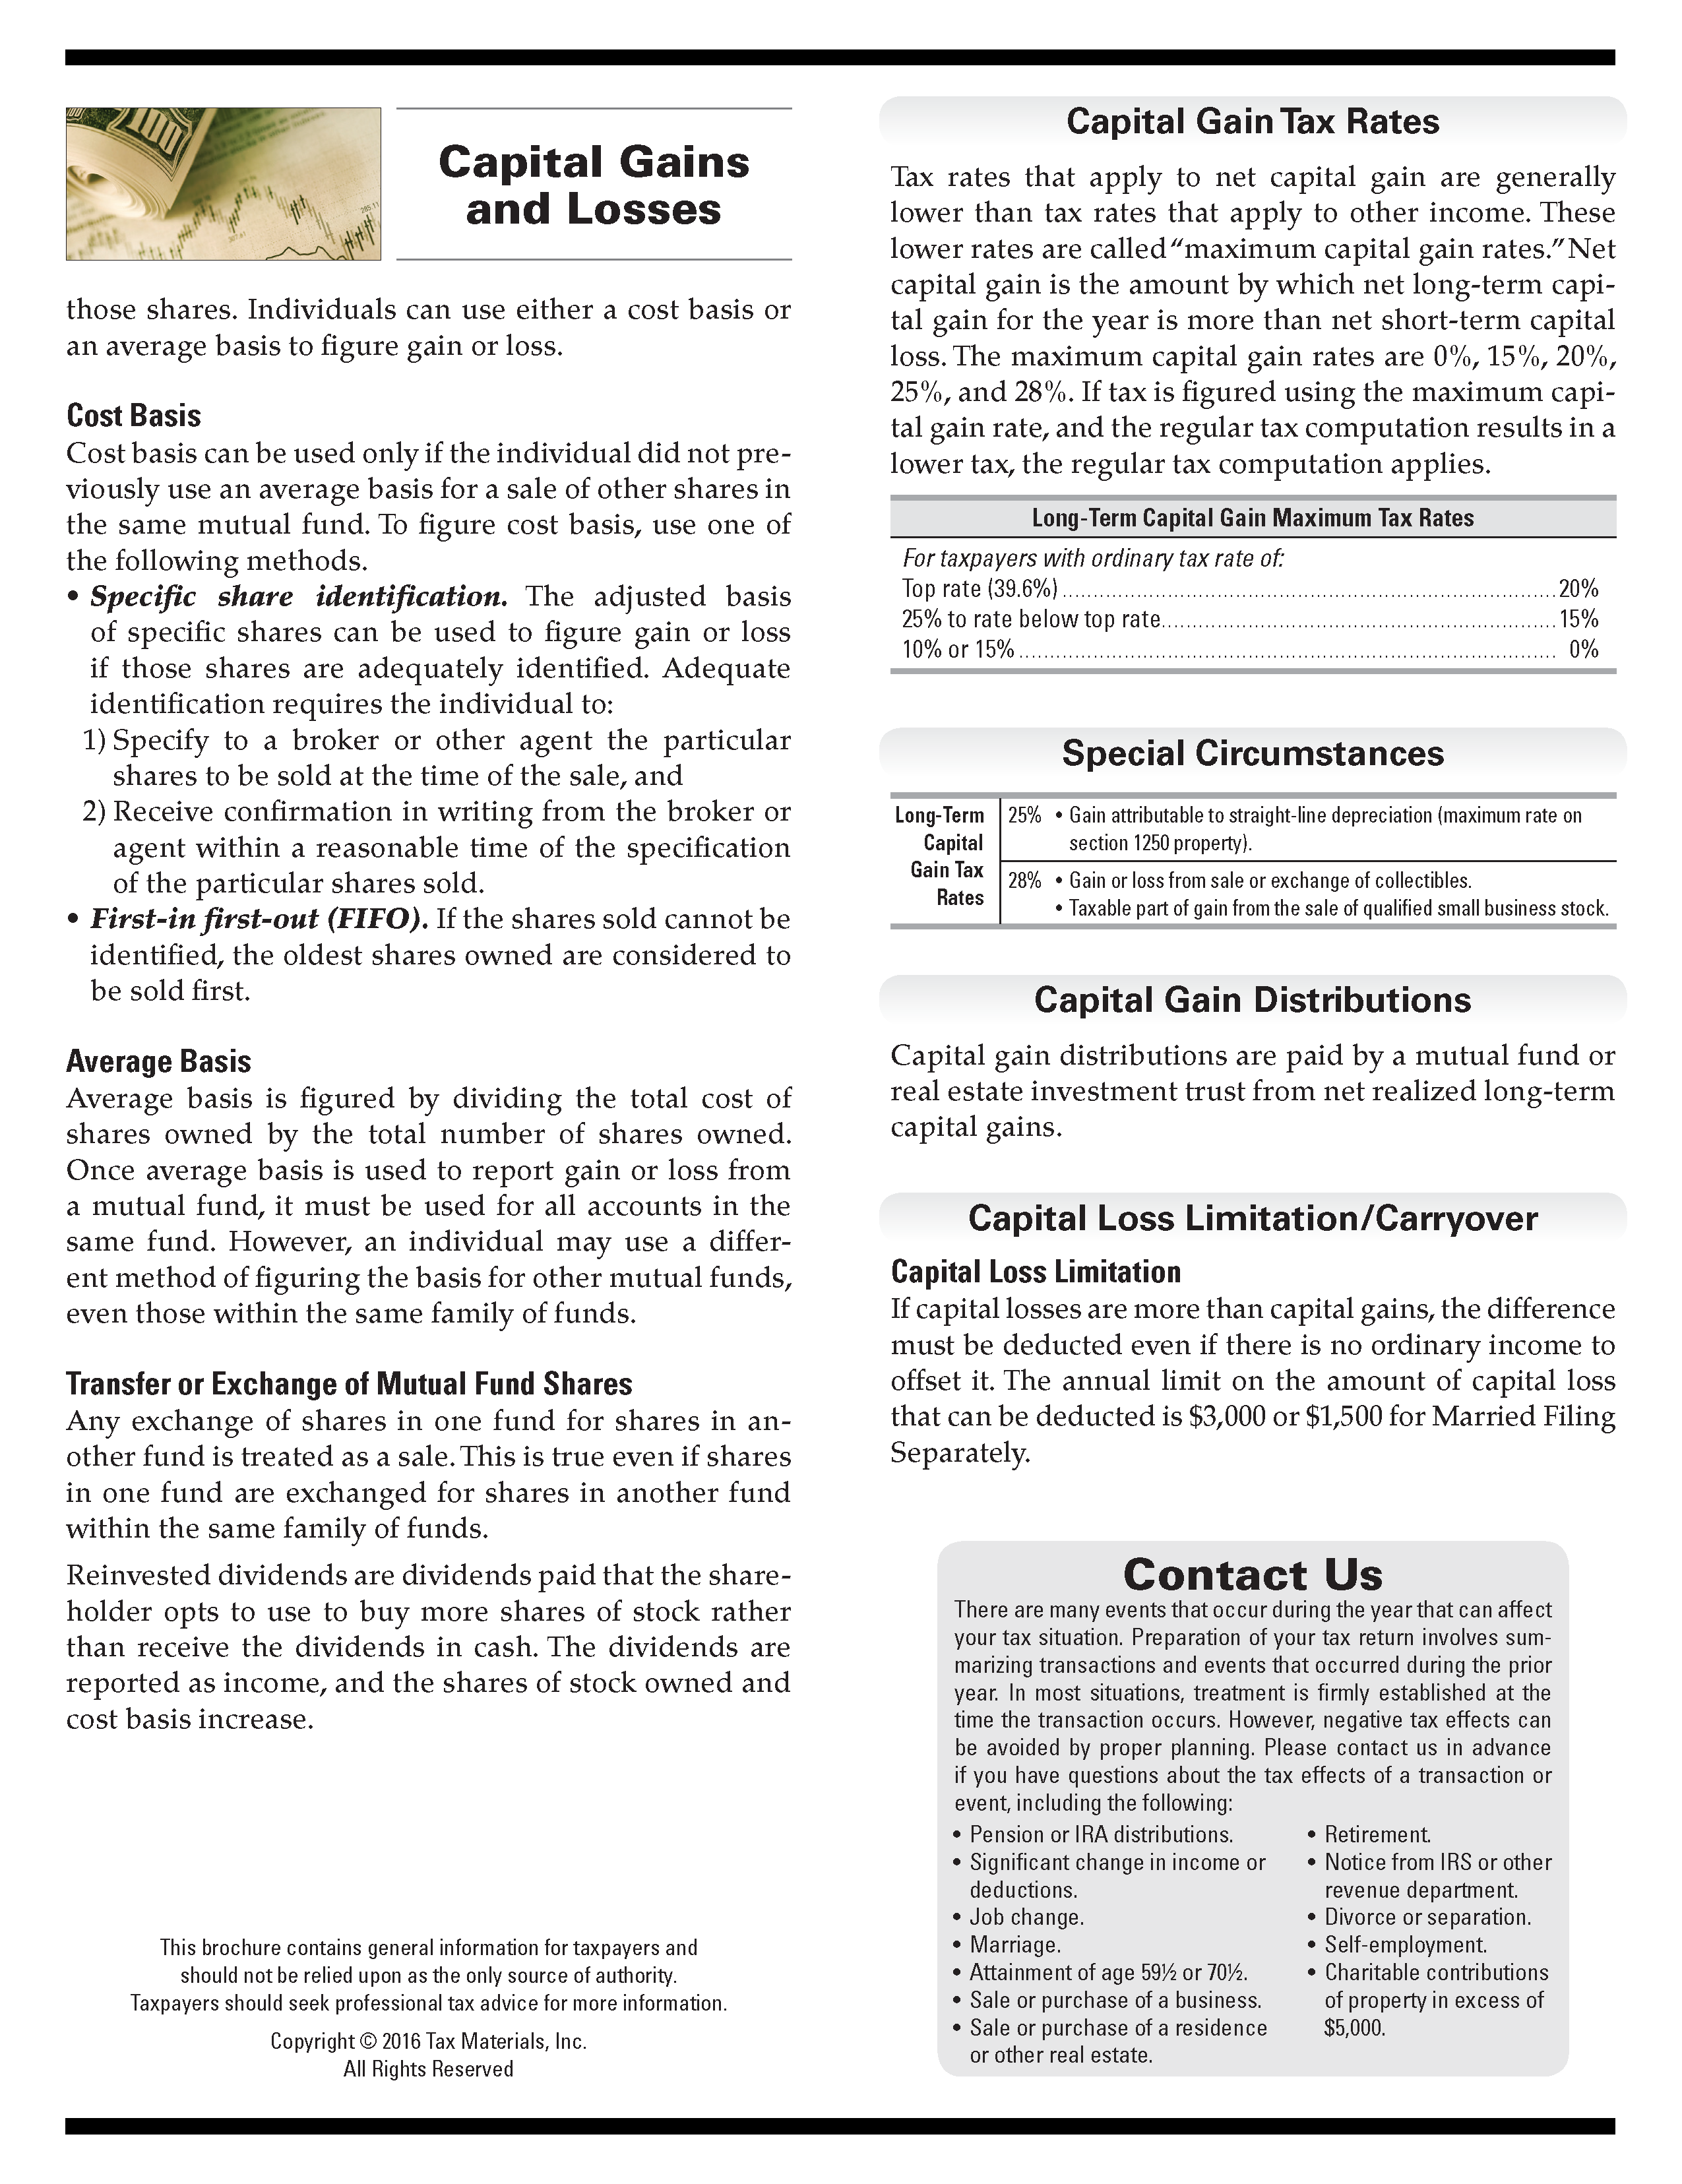 Capital_Gains_and_Losses_2016_Page_2